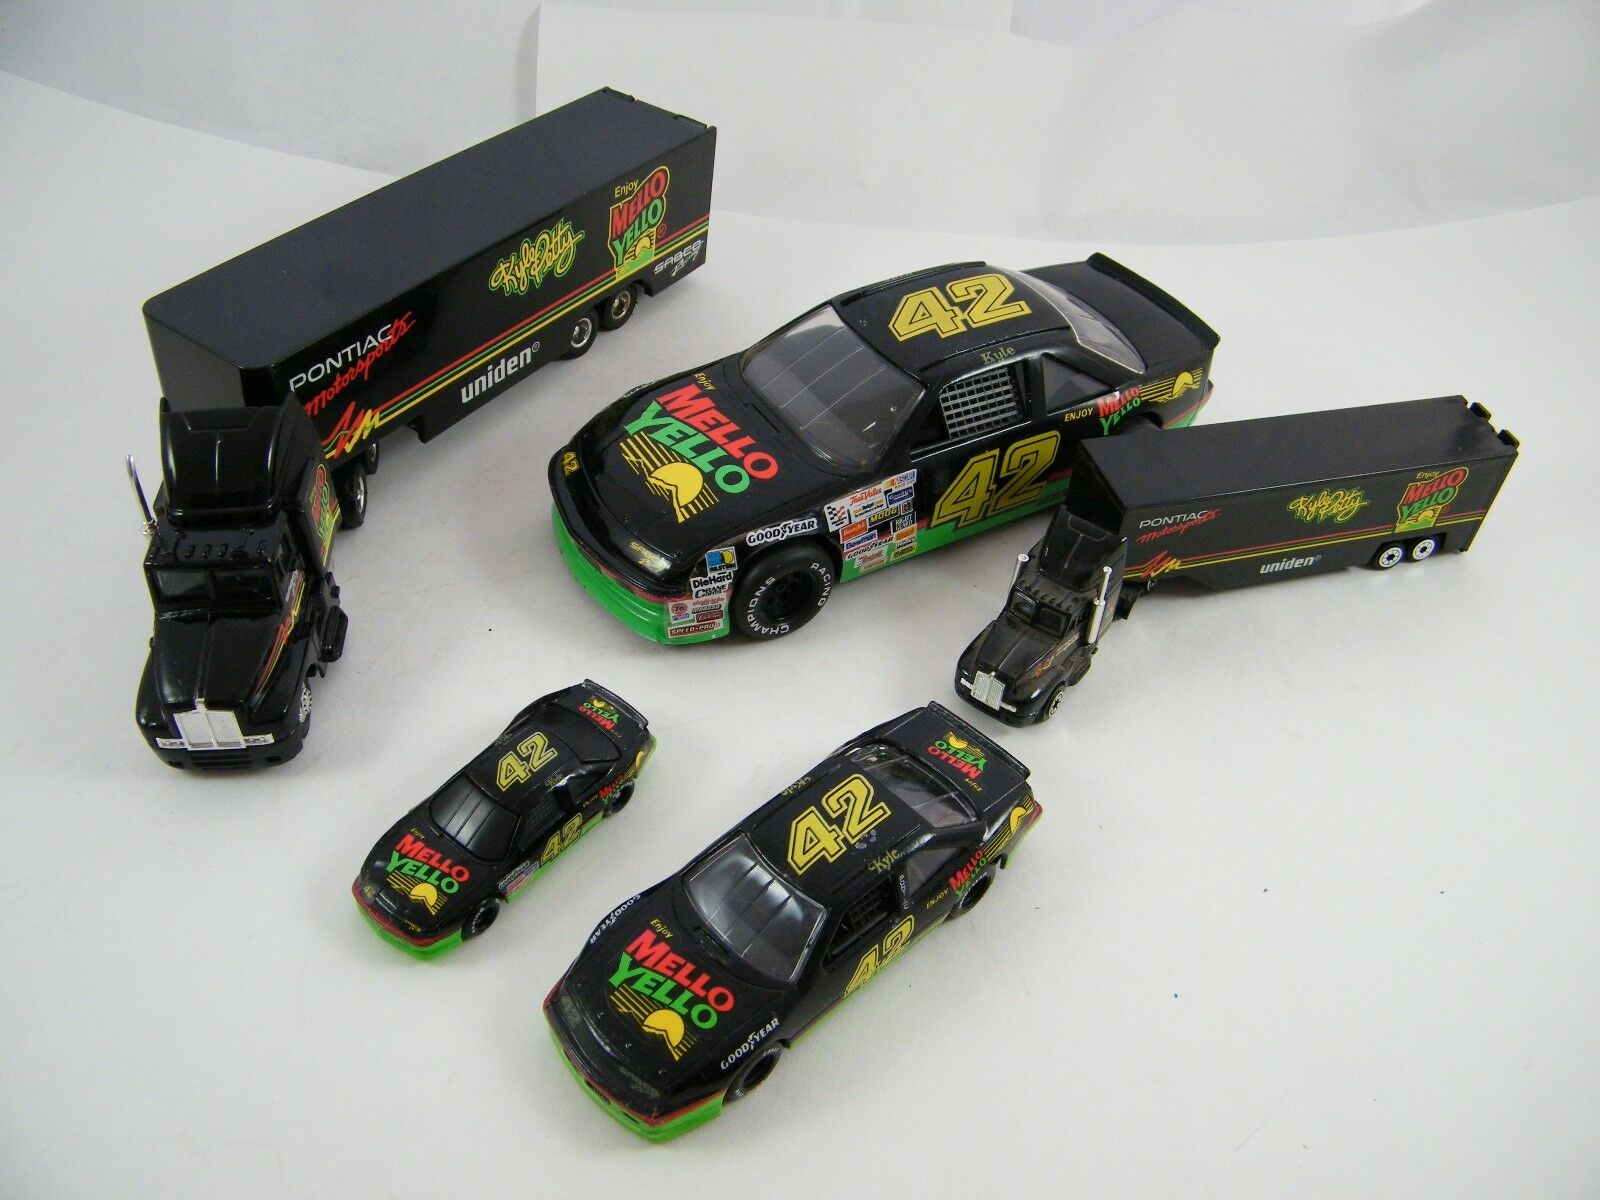 KYLE PETTY  MELLO YELLO RACING  TRANSPORTERS AND CARS